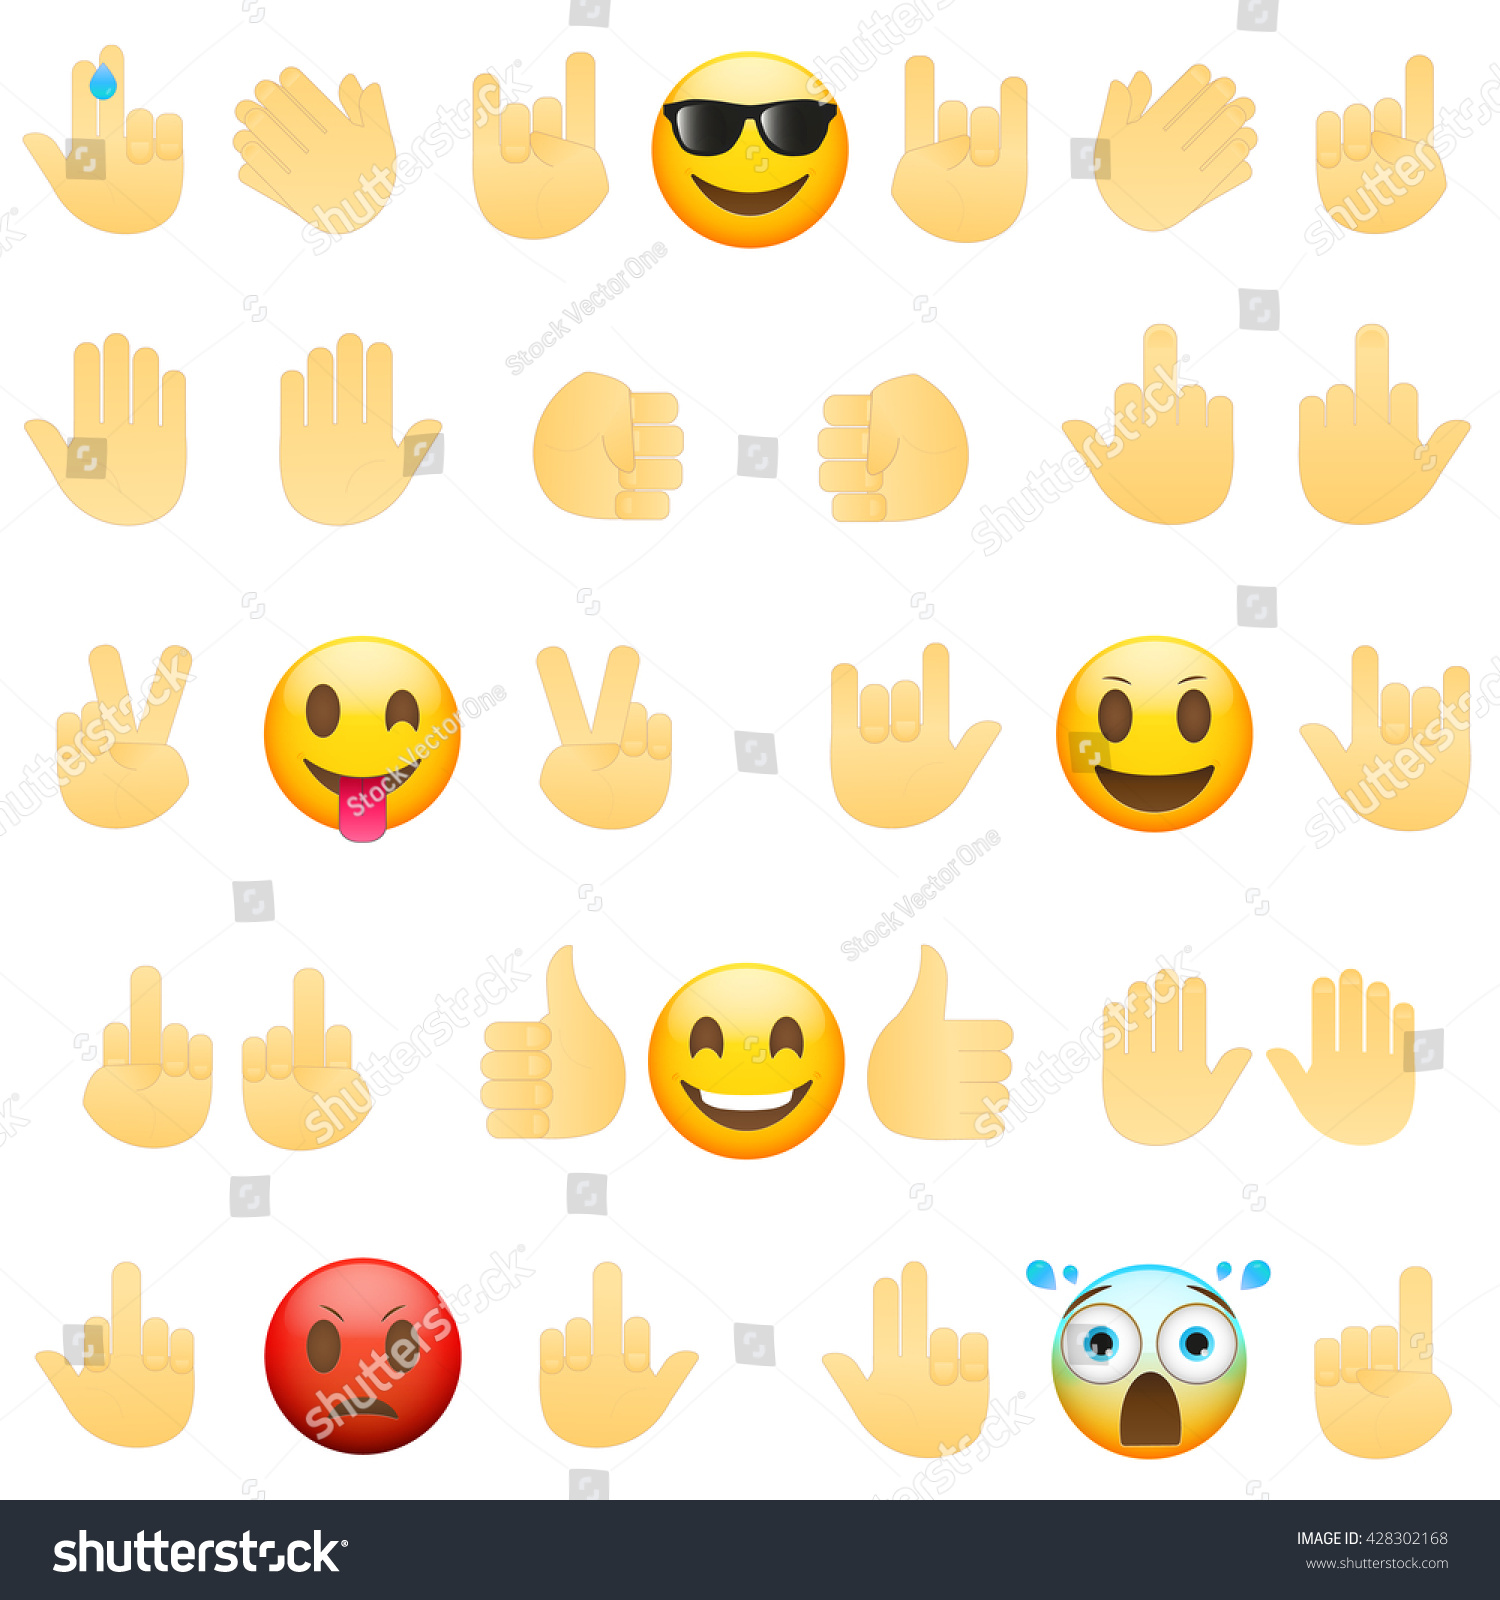 Emoticons faces hand icons isolated on stock vector 428302168 emoticons faces and hand icons isolated on white backgroundl emoji modern flat illustration buycottarizona Images